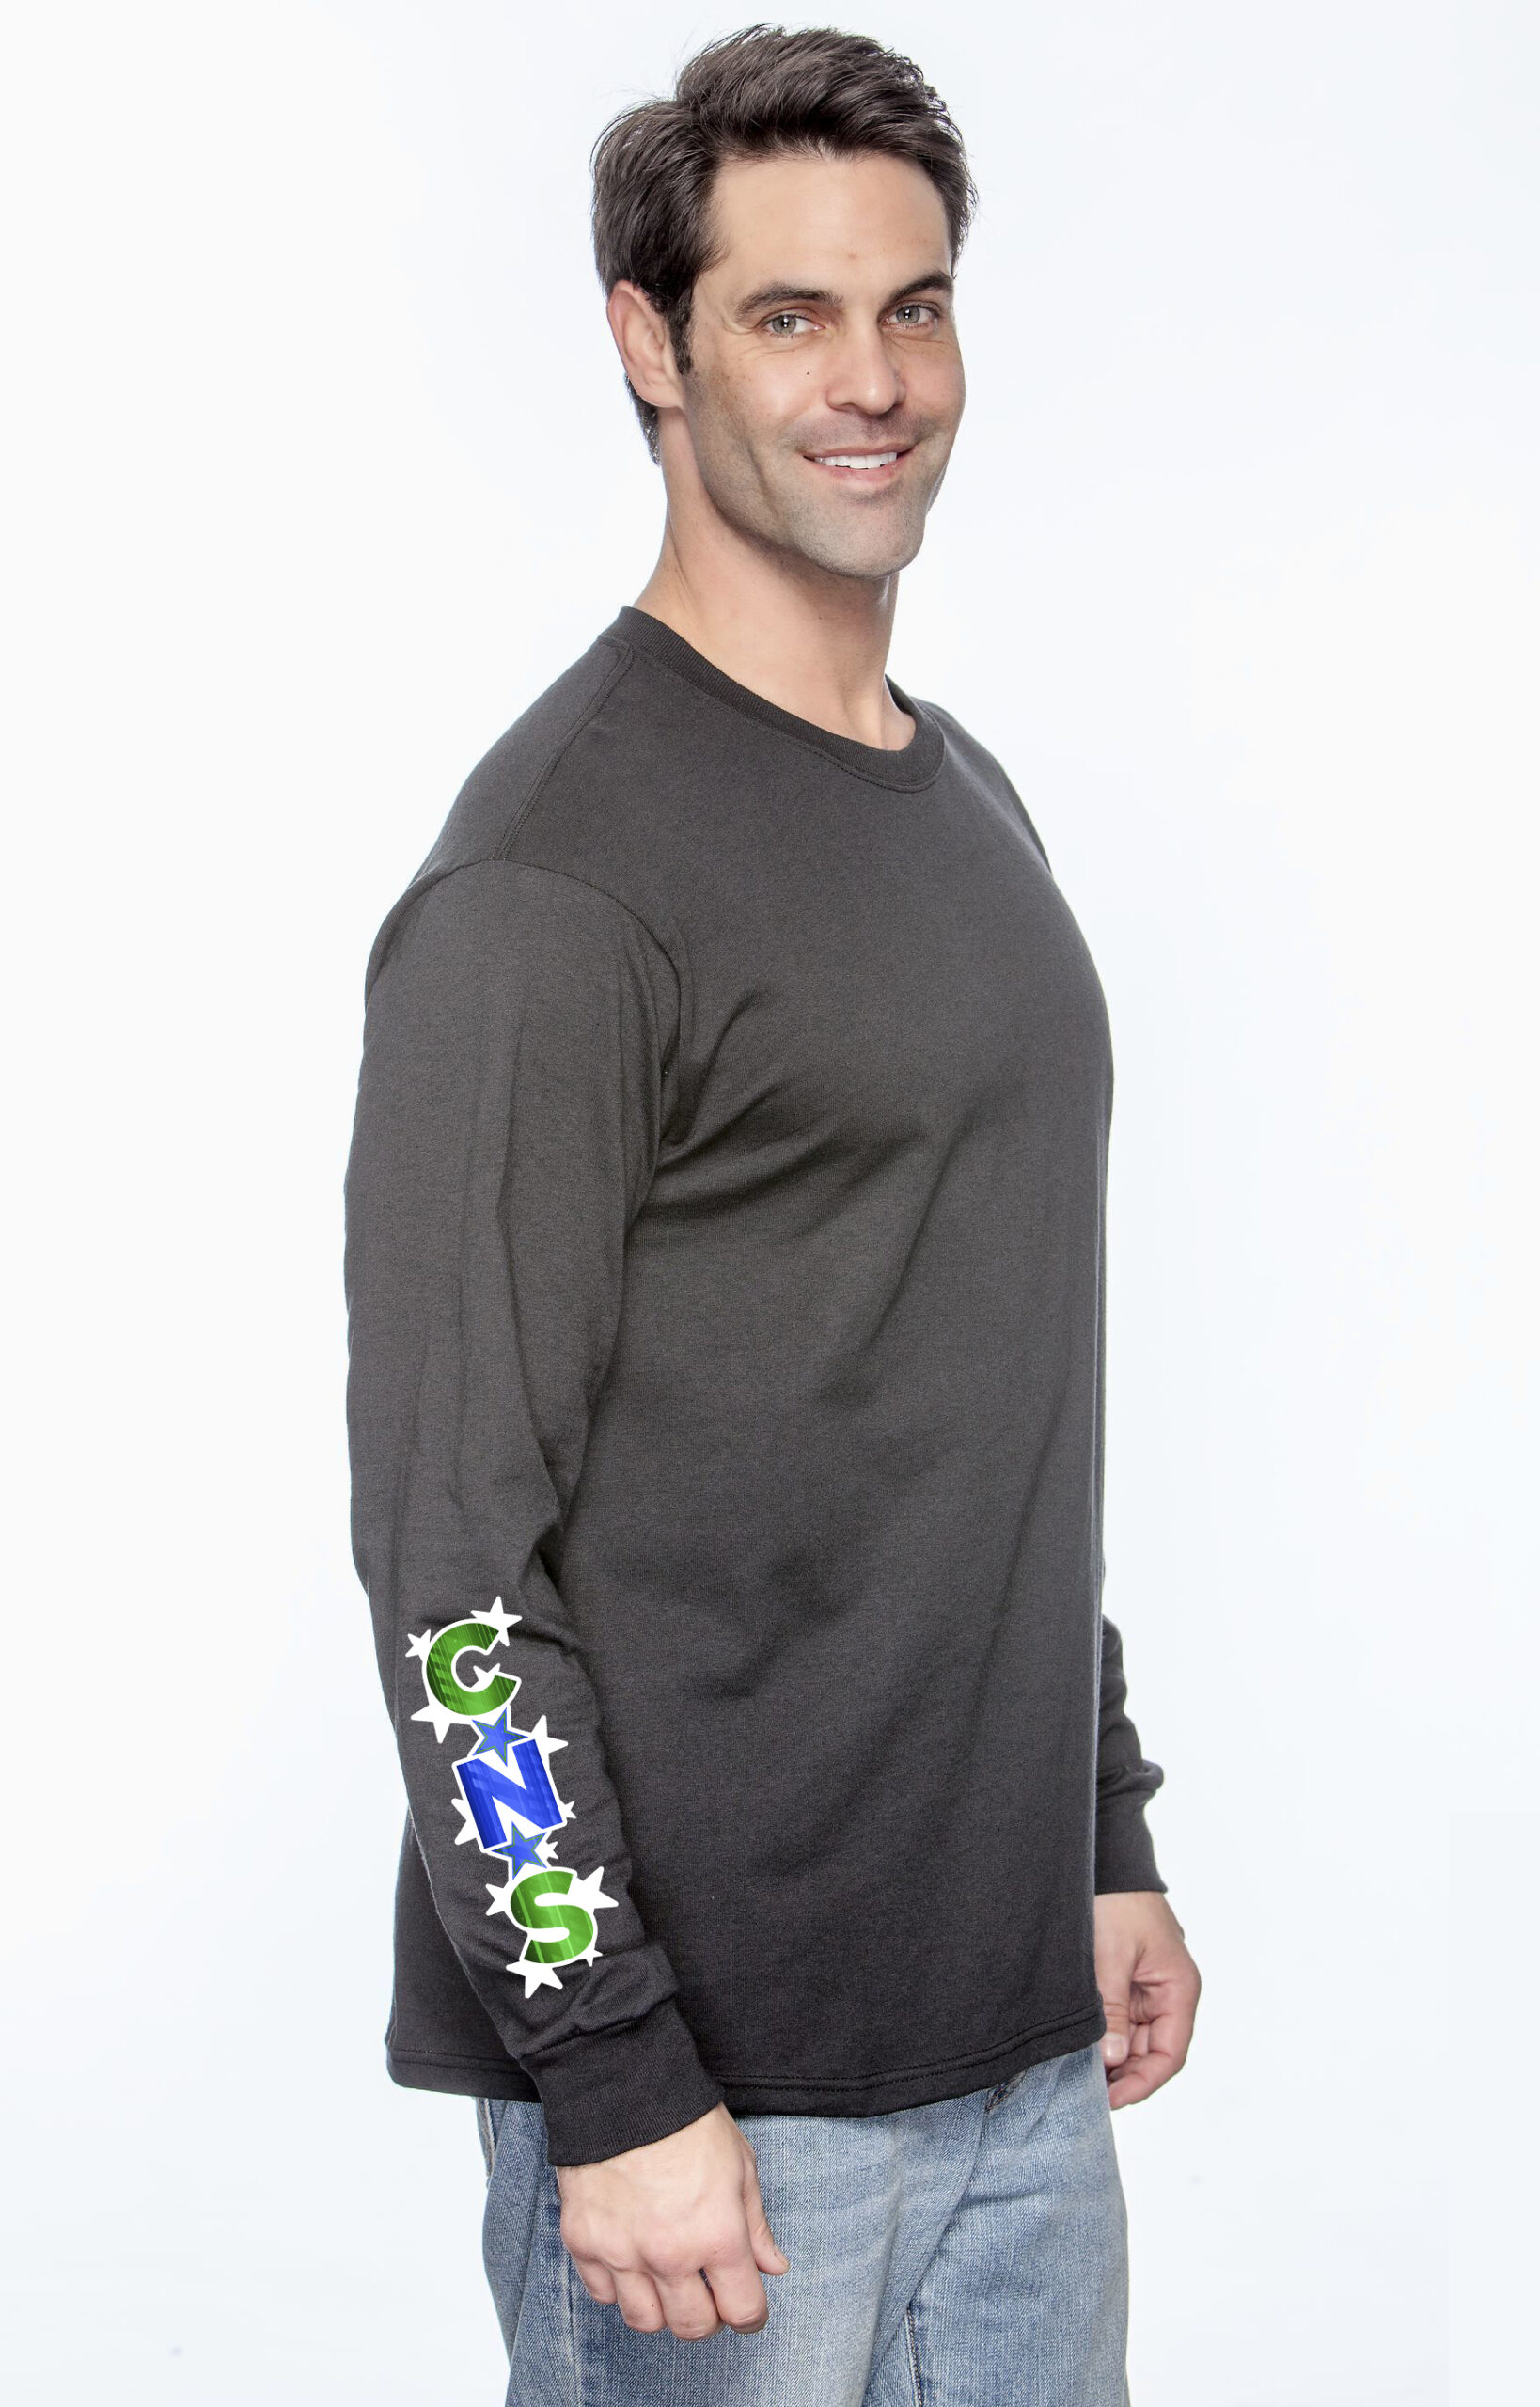 Long Sleeve Shirt CNS On Arm